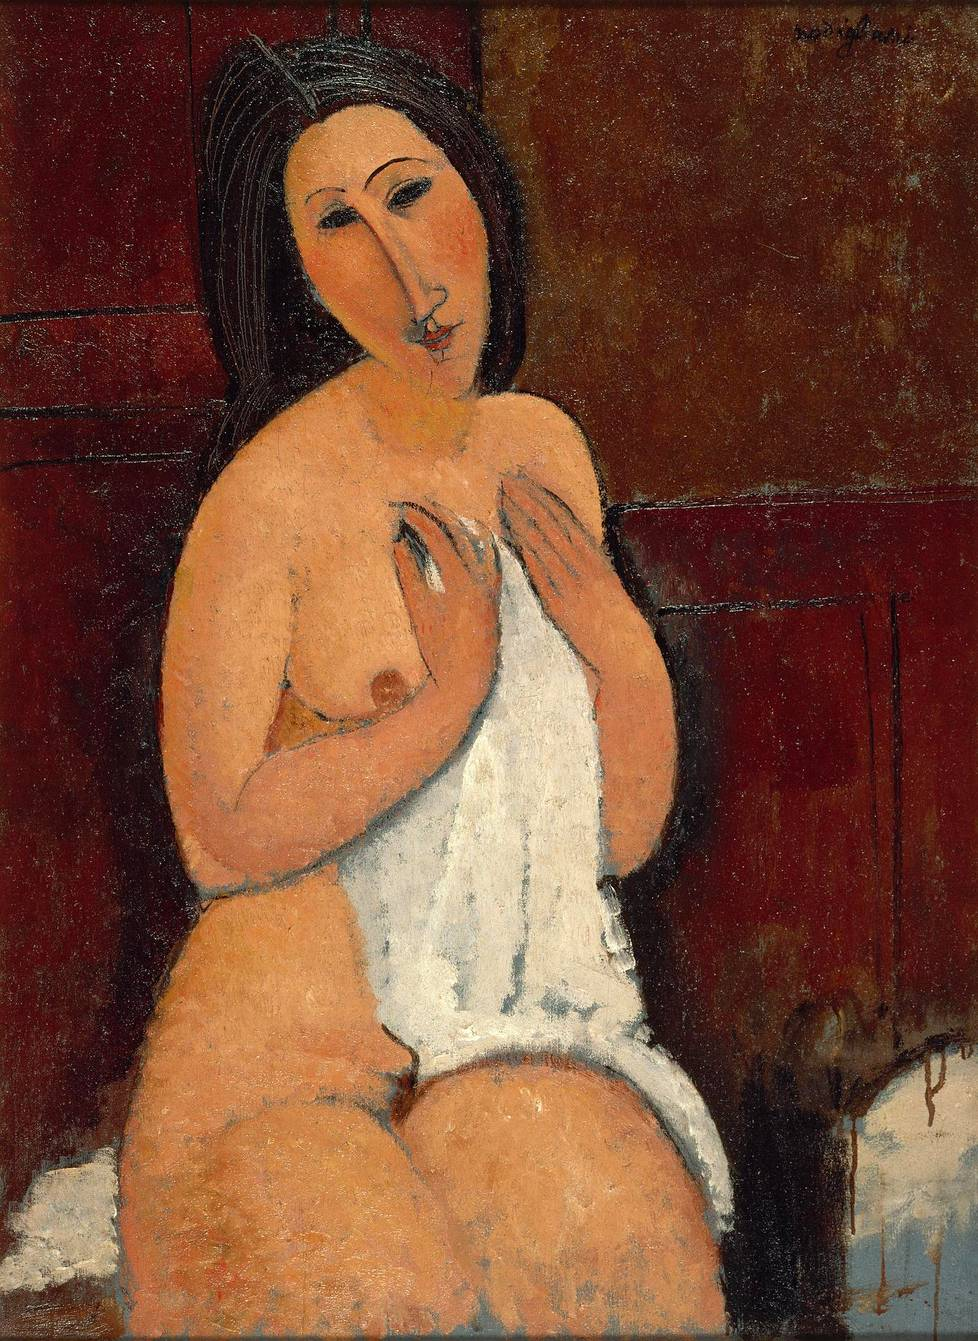 Amedeo Modigliani: Seated Nude With a Shirt (1917).